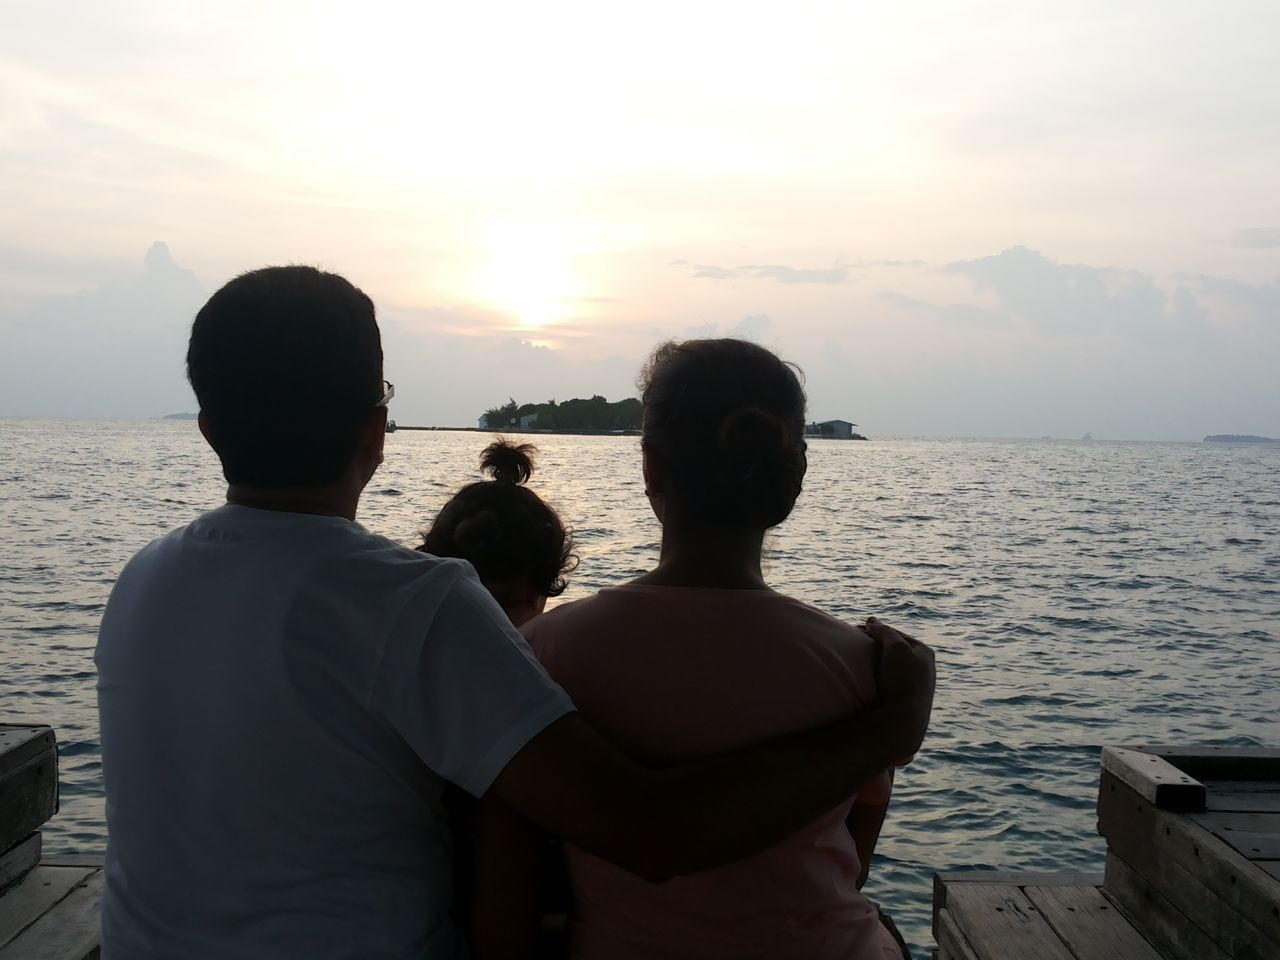 sea, sunset, water, two people, togetherness, rear view, love, men, scenics, sky, nature, leisure activity, idyllic, beauty in nature, bonding, real people, standing, tranquility, vacations, horizon over water, outdoors, friendship, day, adult, people